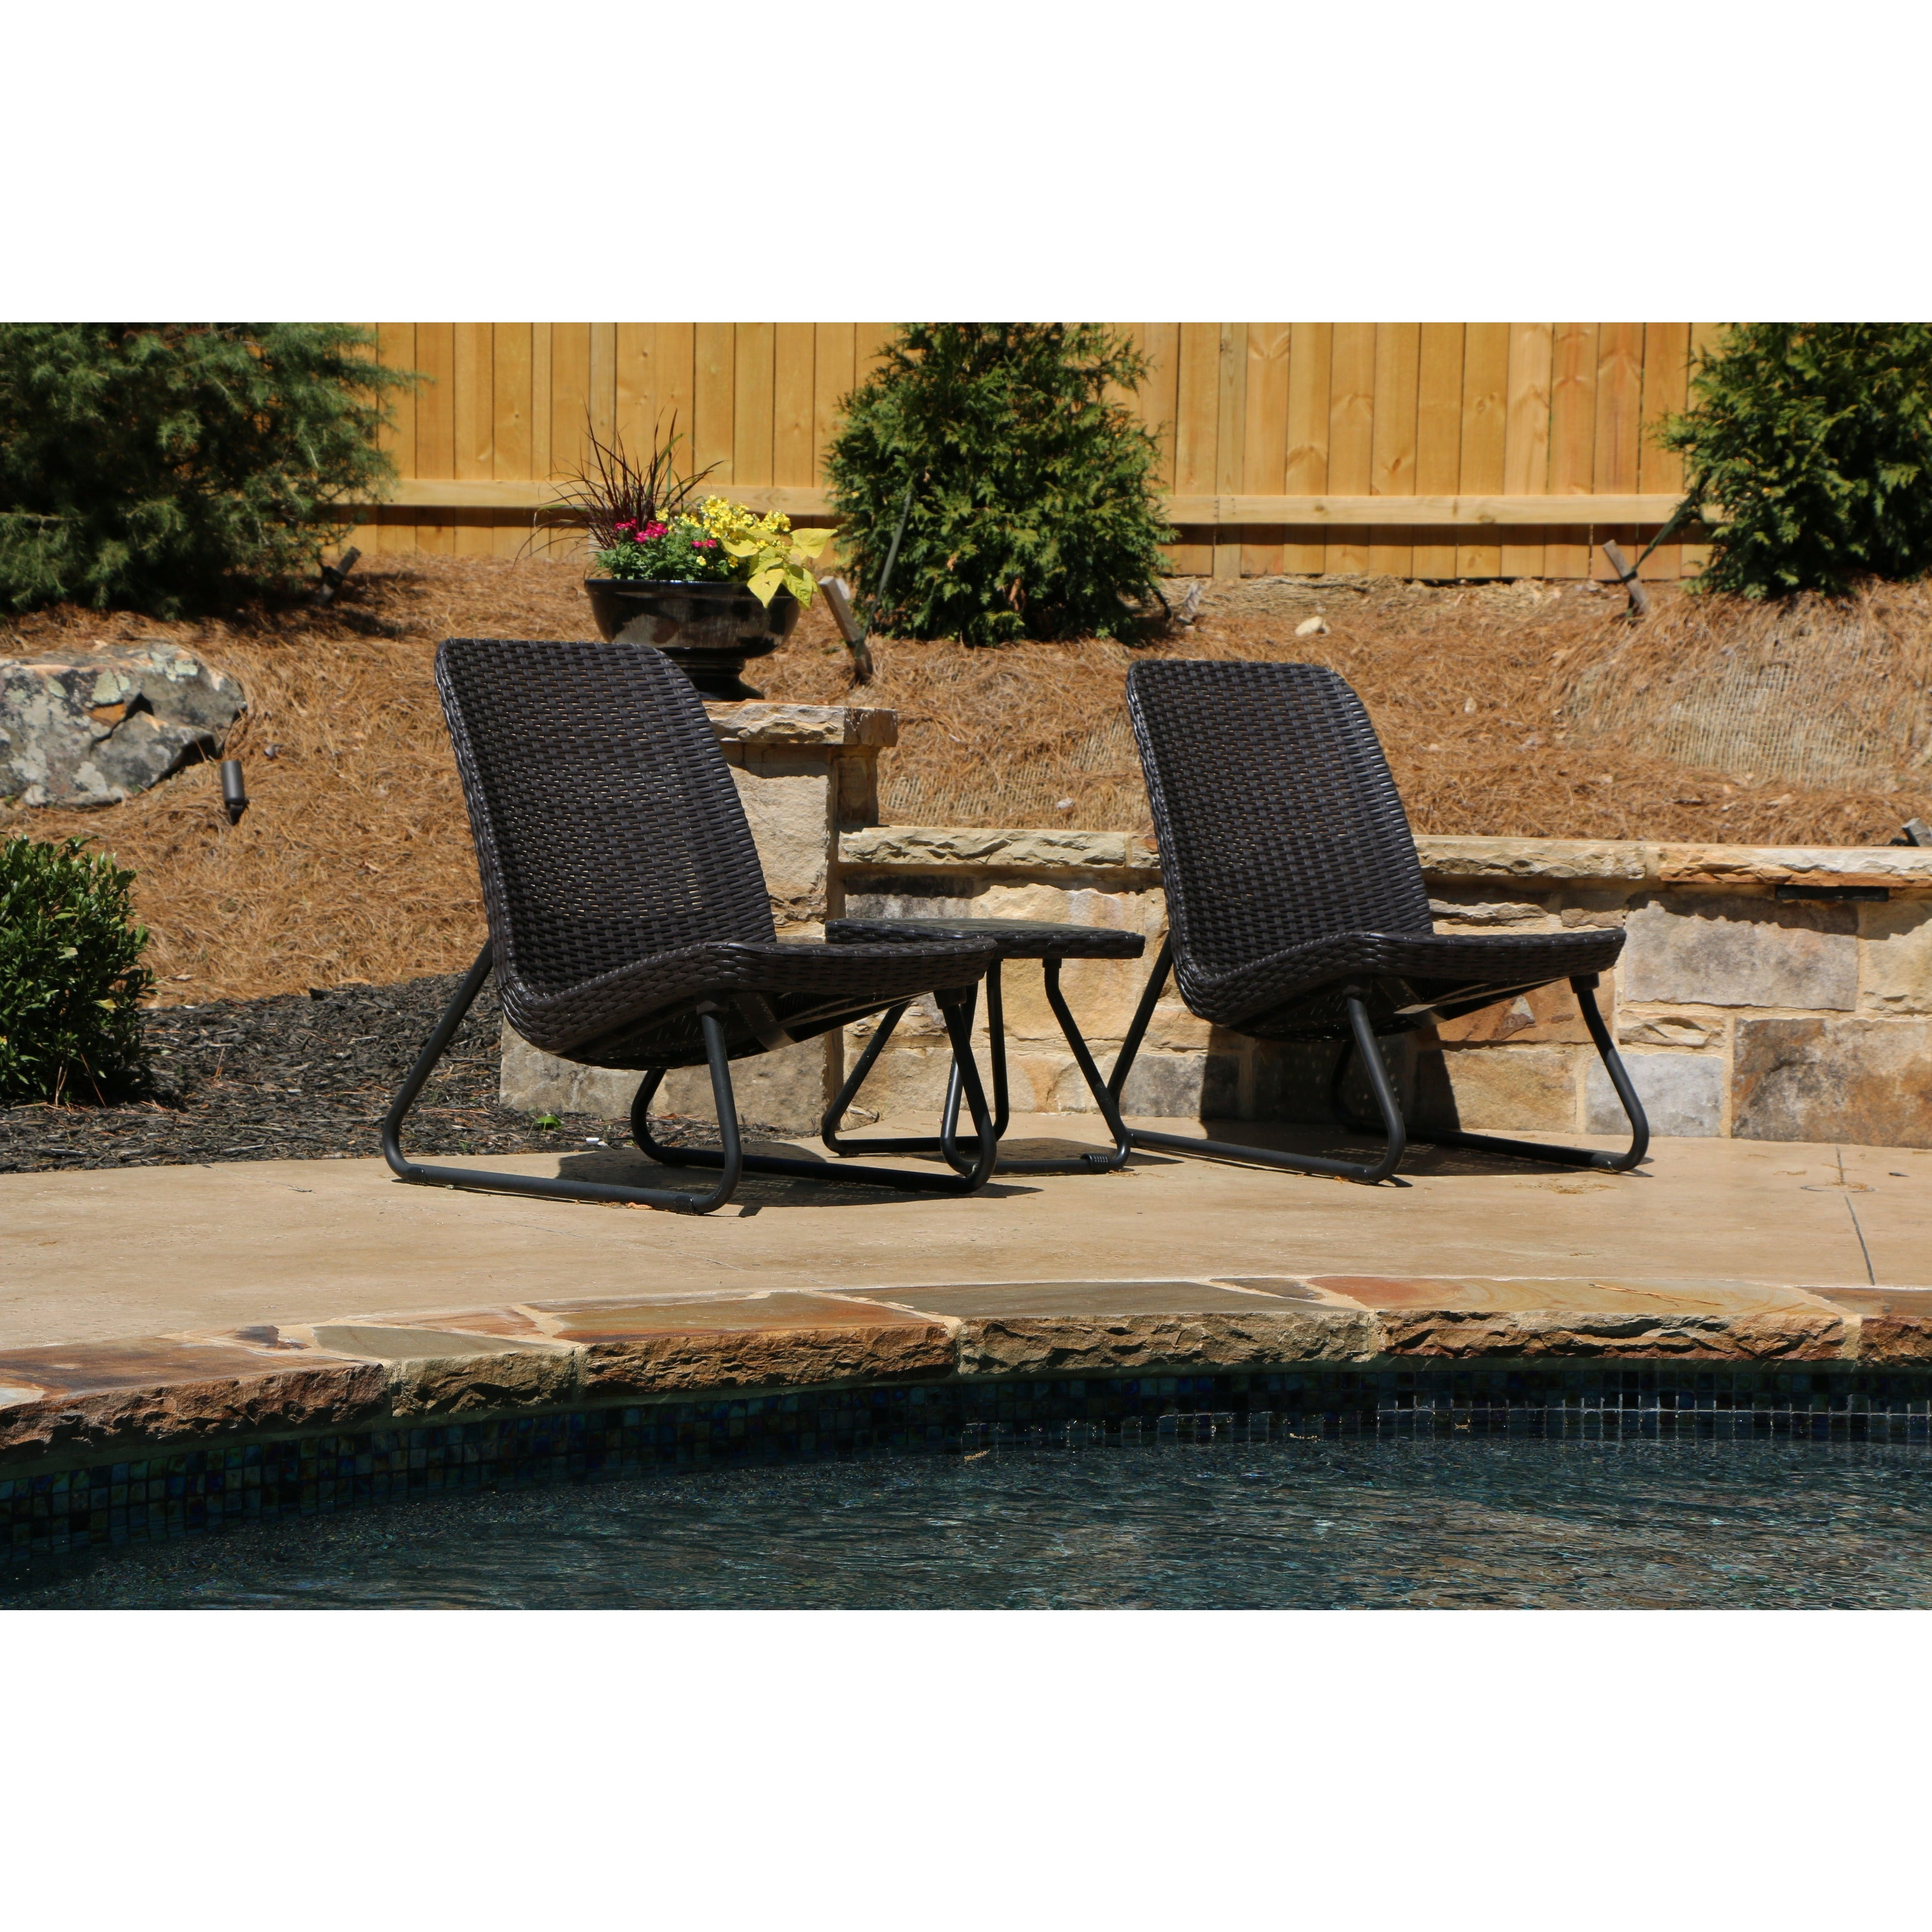 Keter Rio 3 Piece All Weather Outdoor Conversation Chair and Table